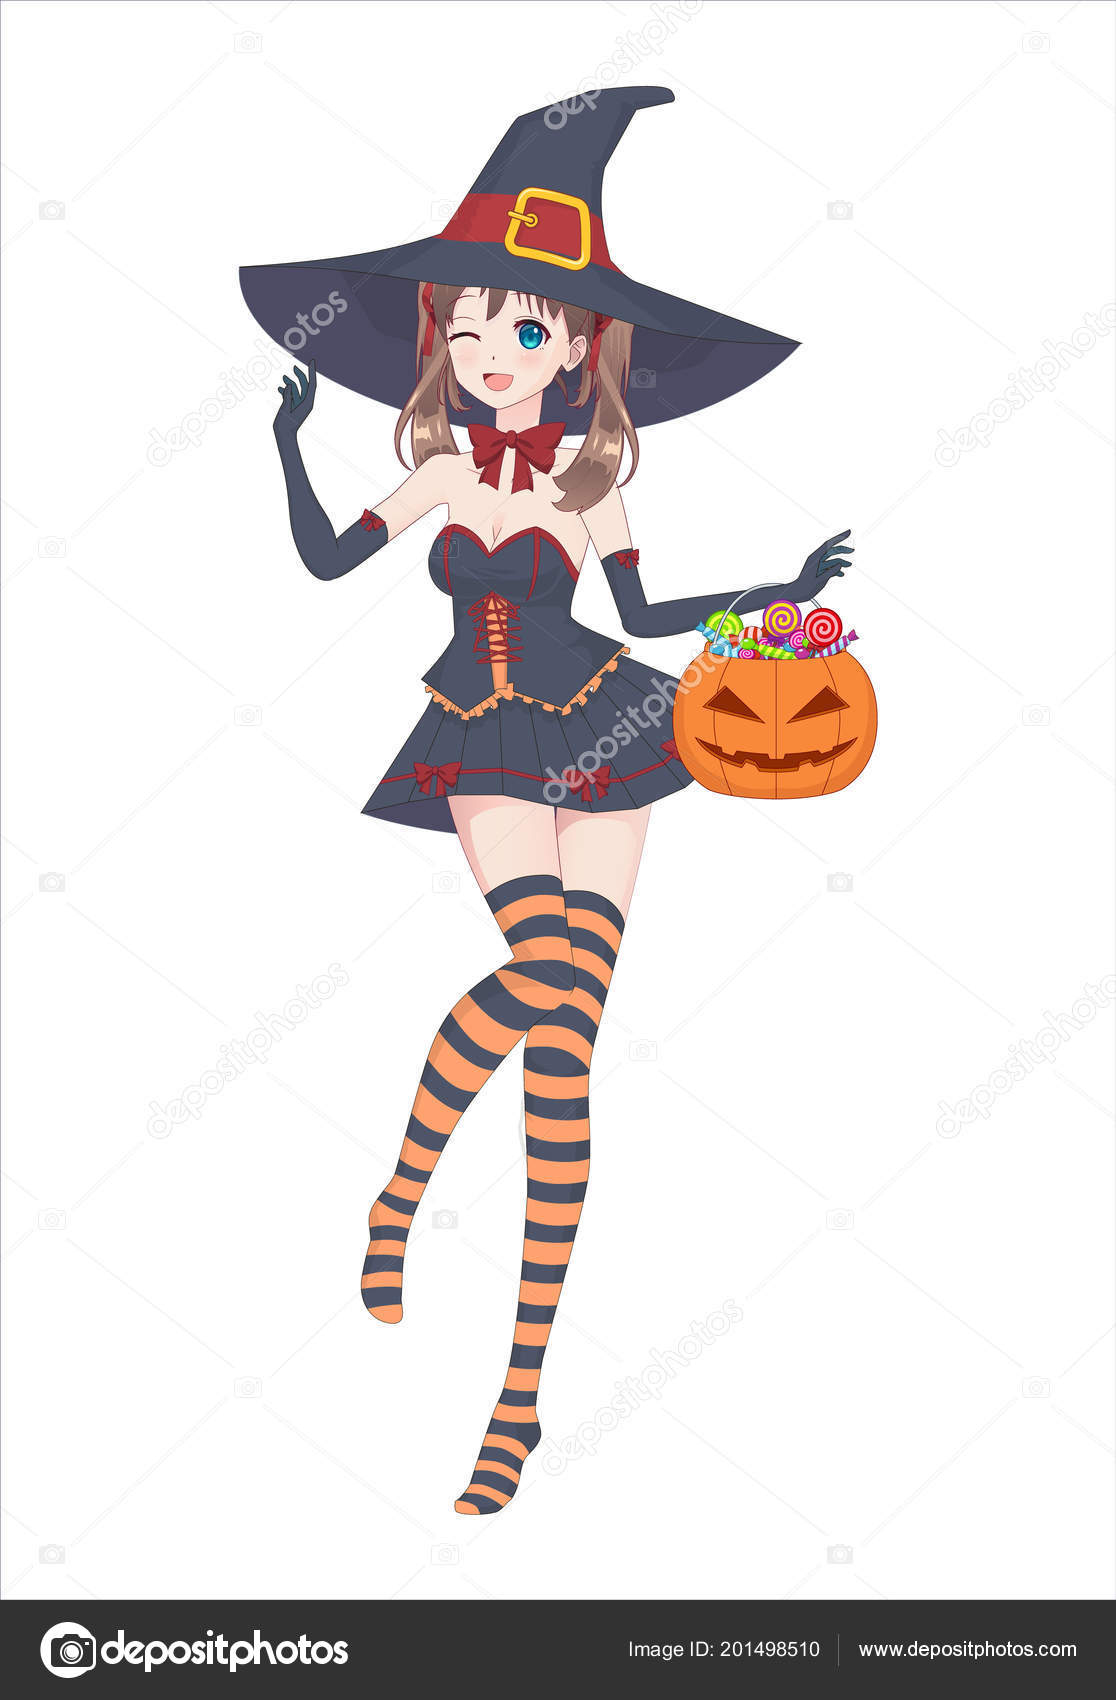 Anime manga girl in a witch costume with a big hat on her head and striped stockings holds a pumpkin bag with sweets in his hand